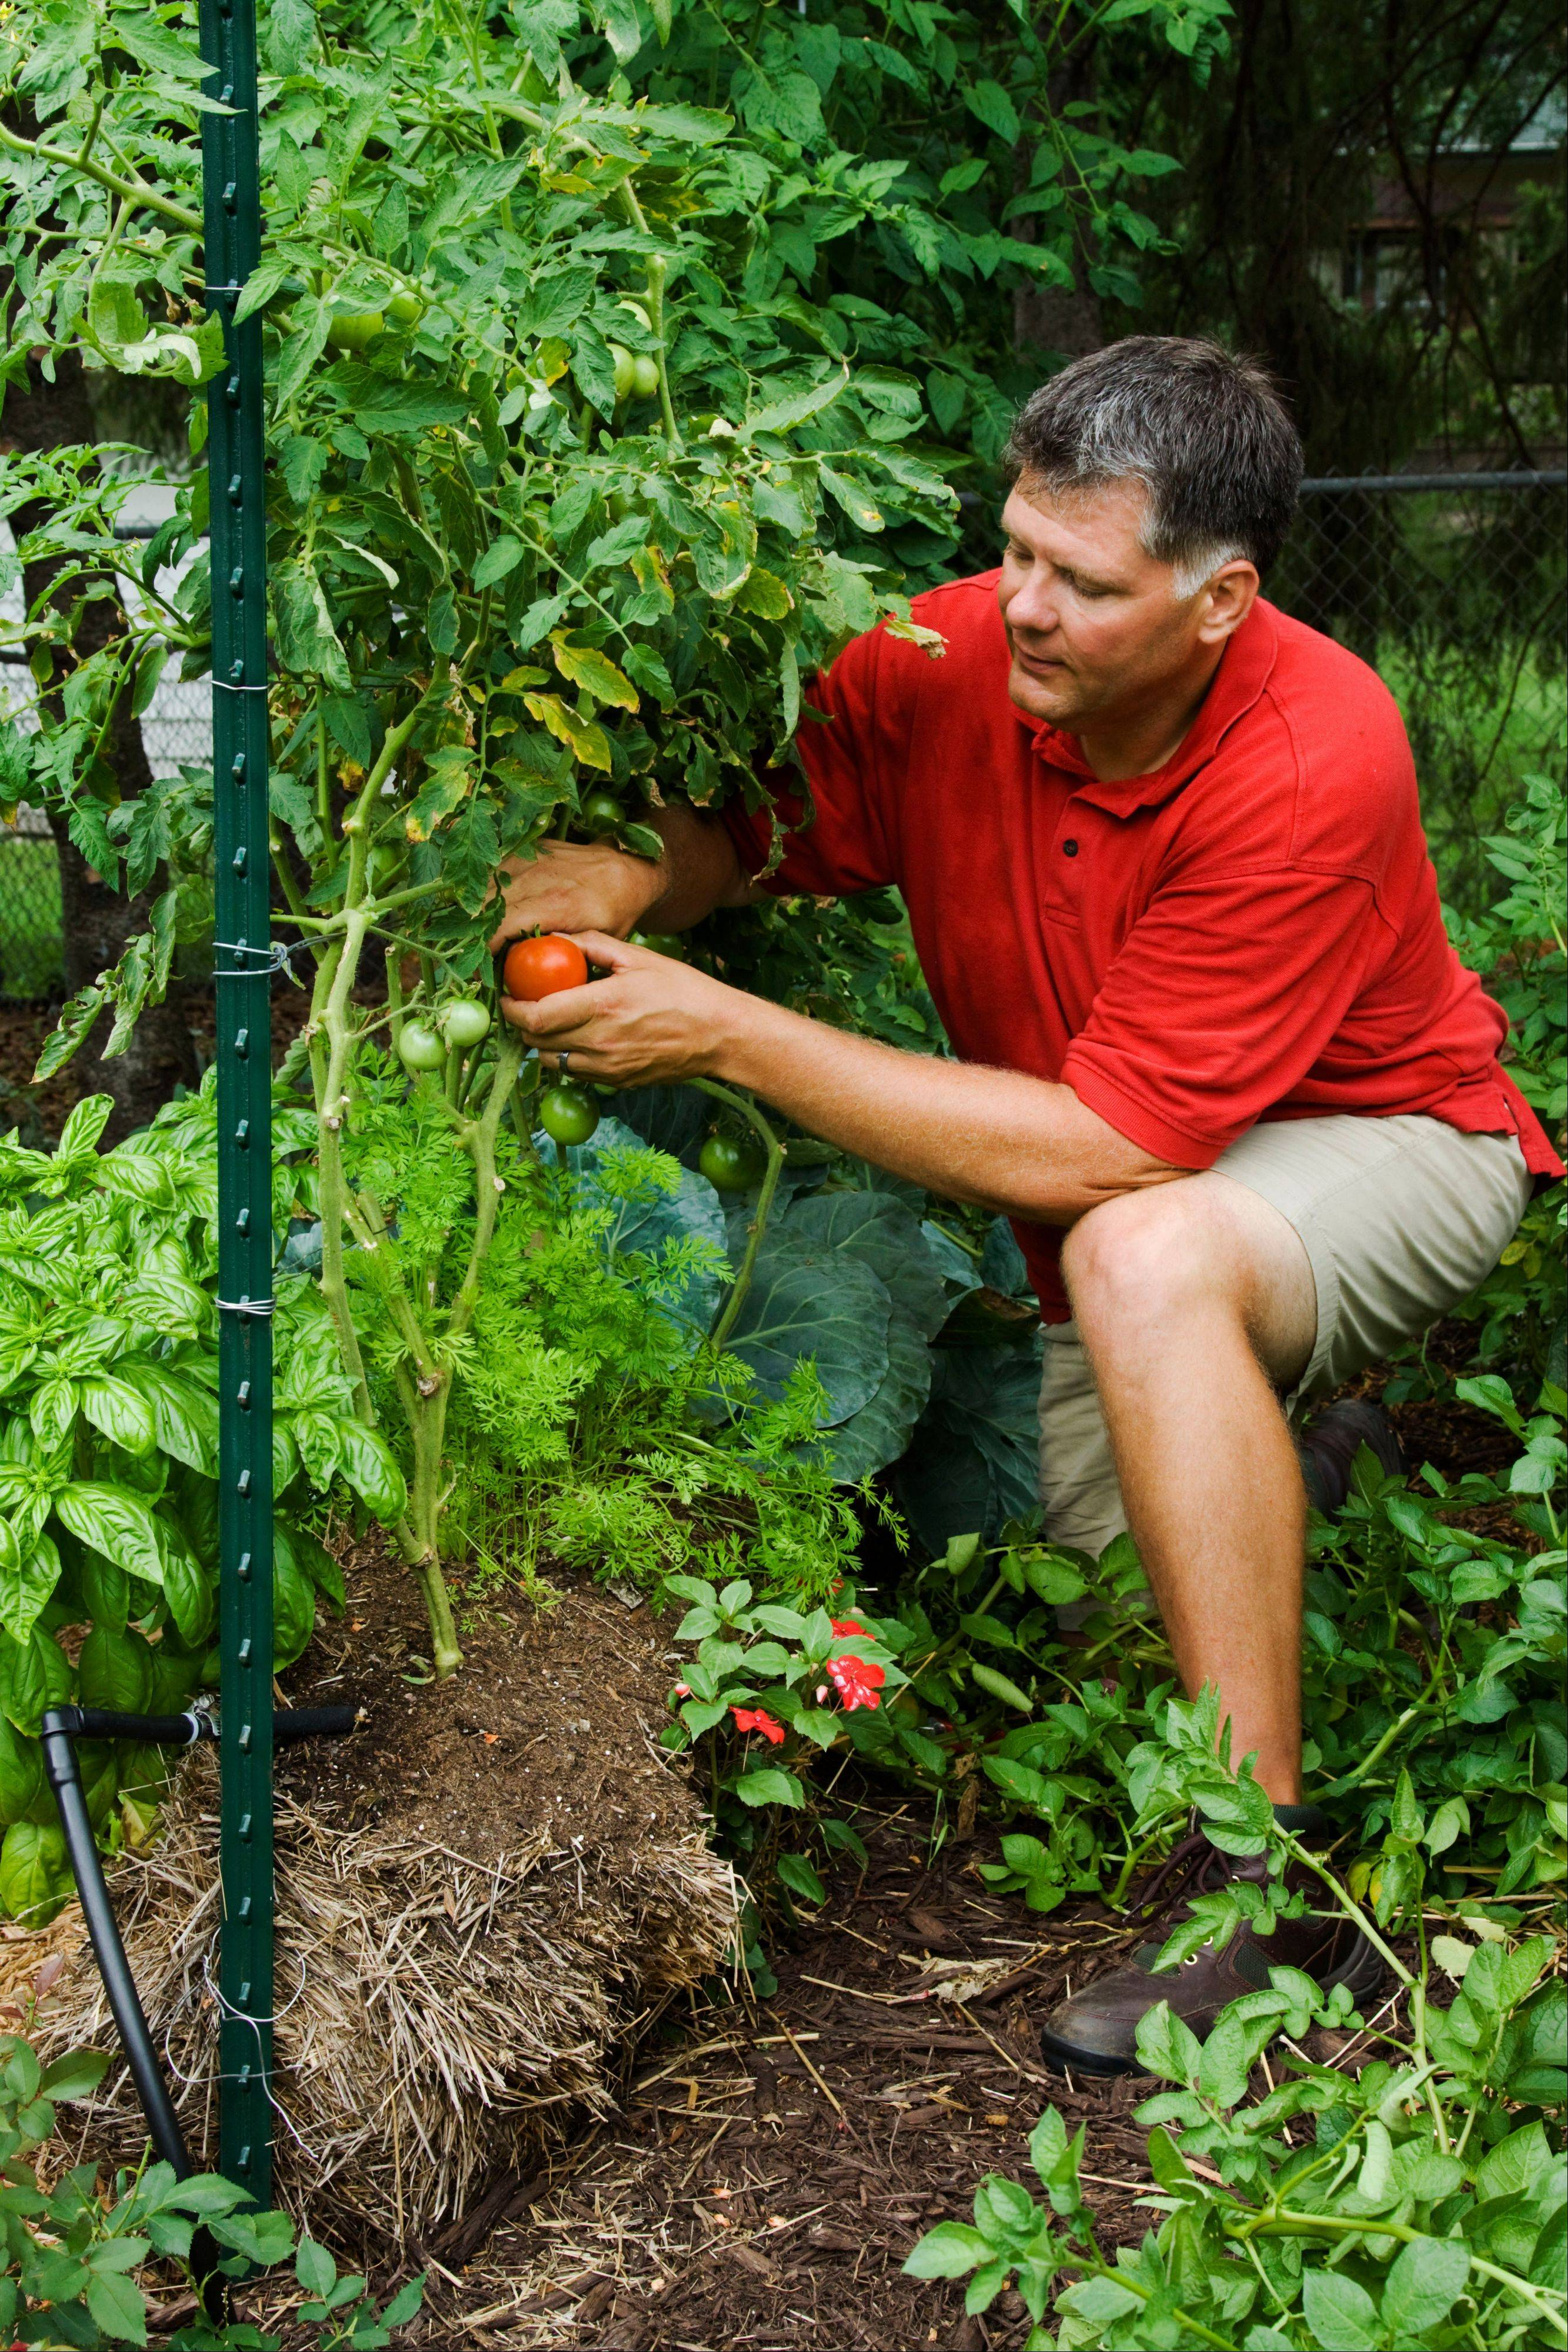 Minnesota author and gardener, Joel Karsten, picks tomatoes from his straw bale garden. Karsten is the leading proponent of a straw-bale gardening movement that has become one of this summer's hottest gardening trends.